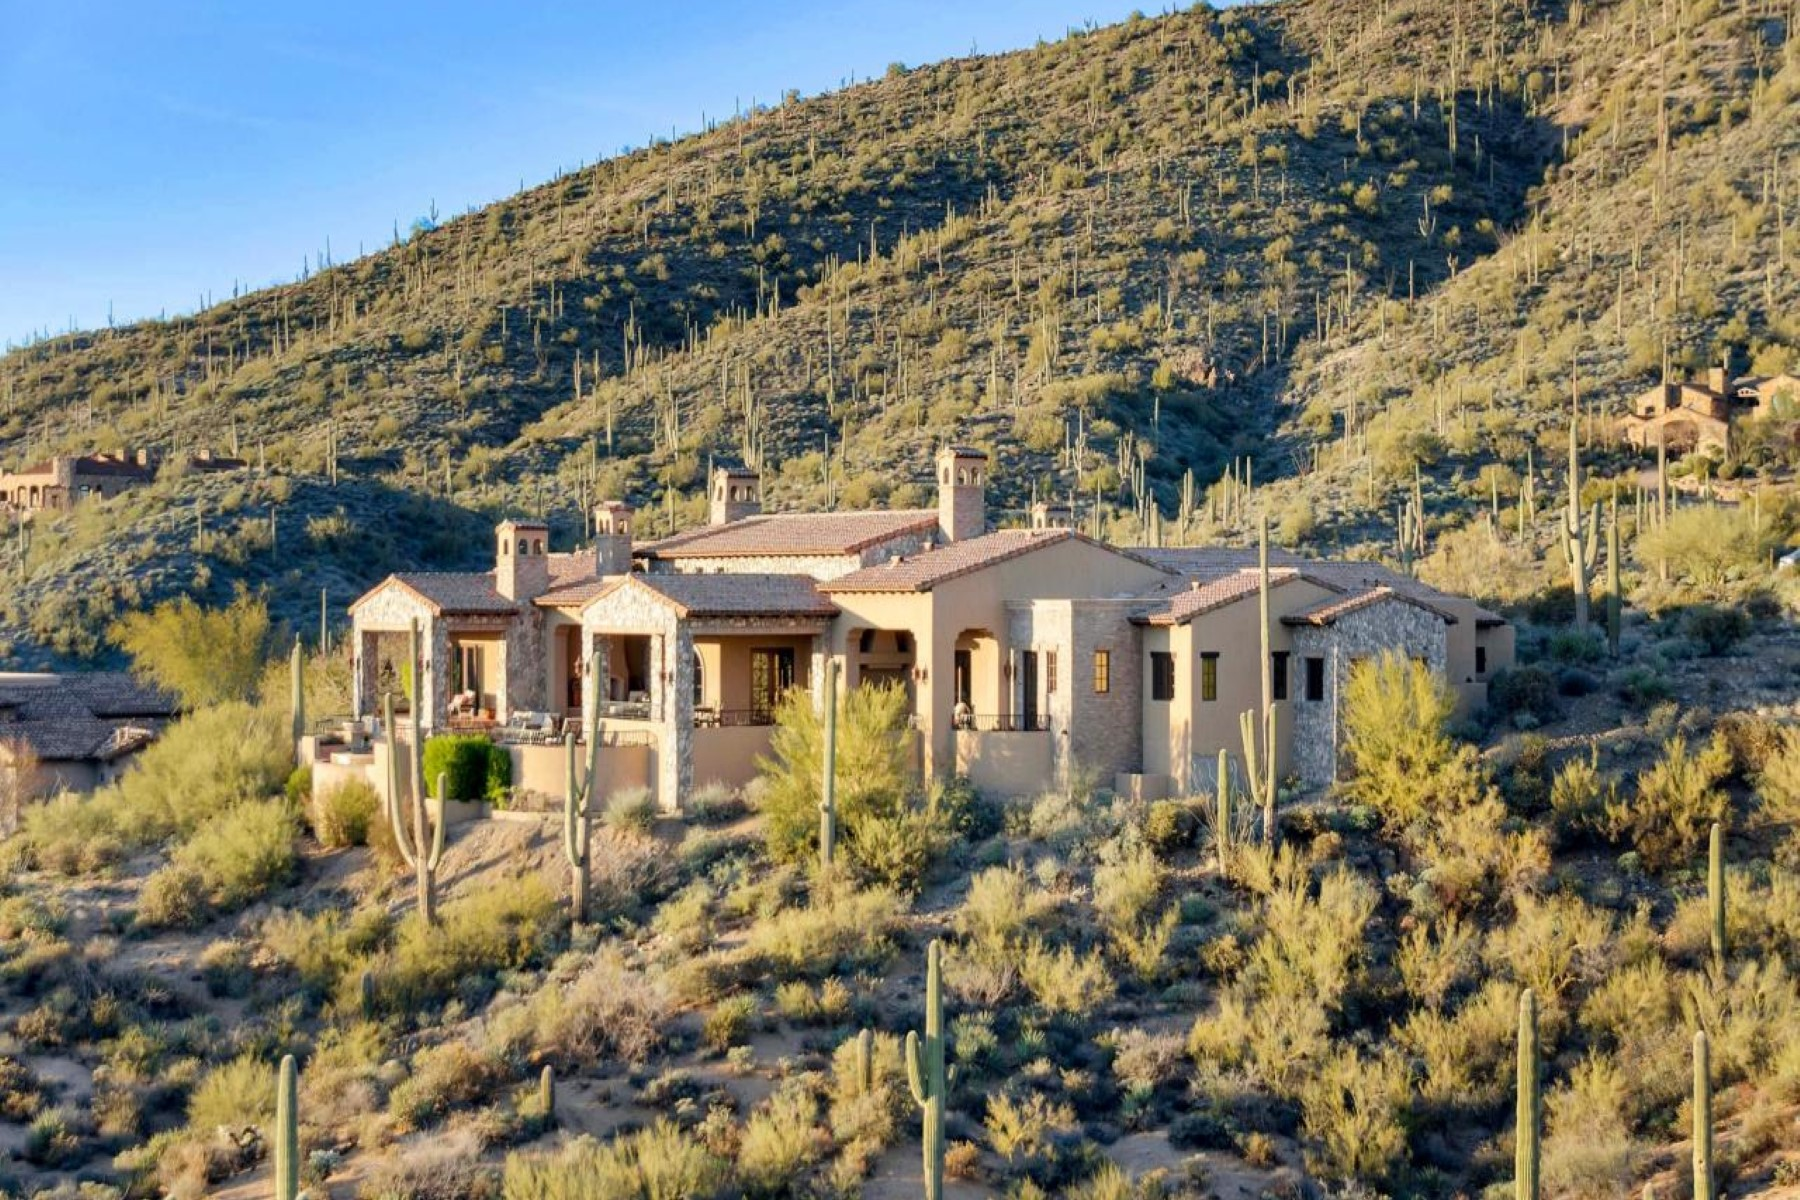 Casa Unifamiliar por un Venta en Tuscan andalusian style home offers unparalleled views 9919 E Sienna Hills Dr Scottsdale, Arizona, 85262 Estados Unidos